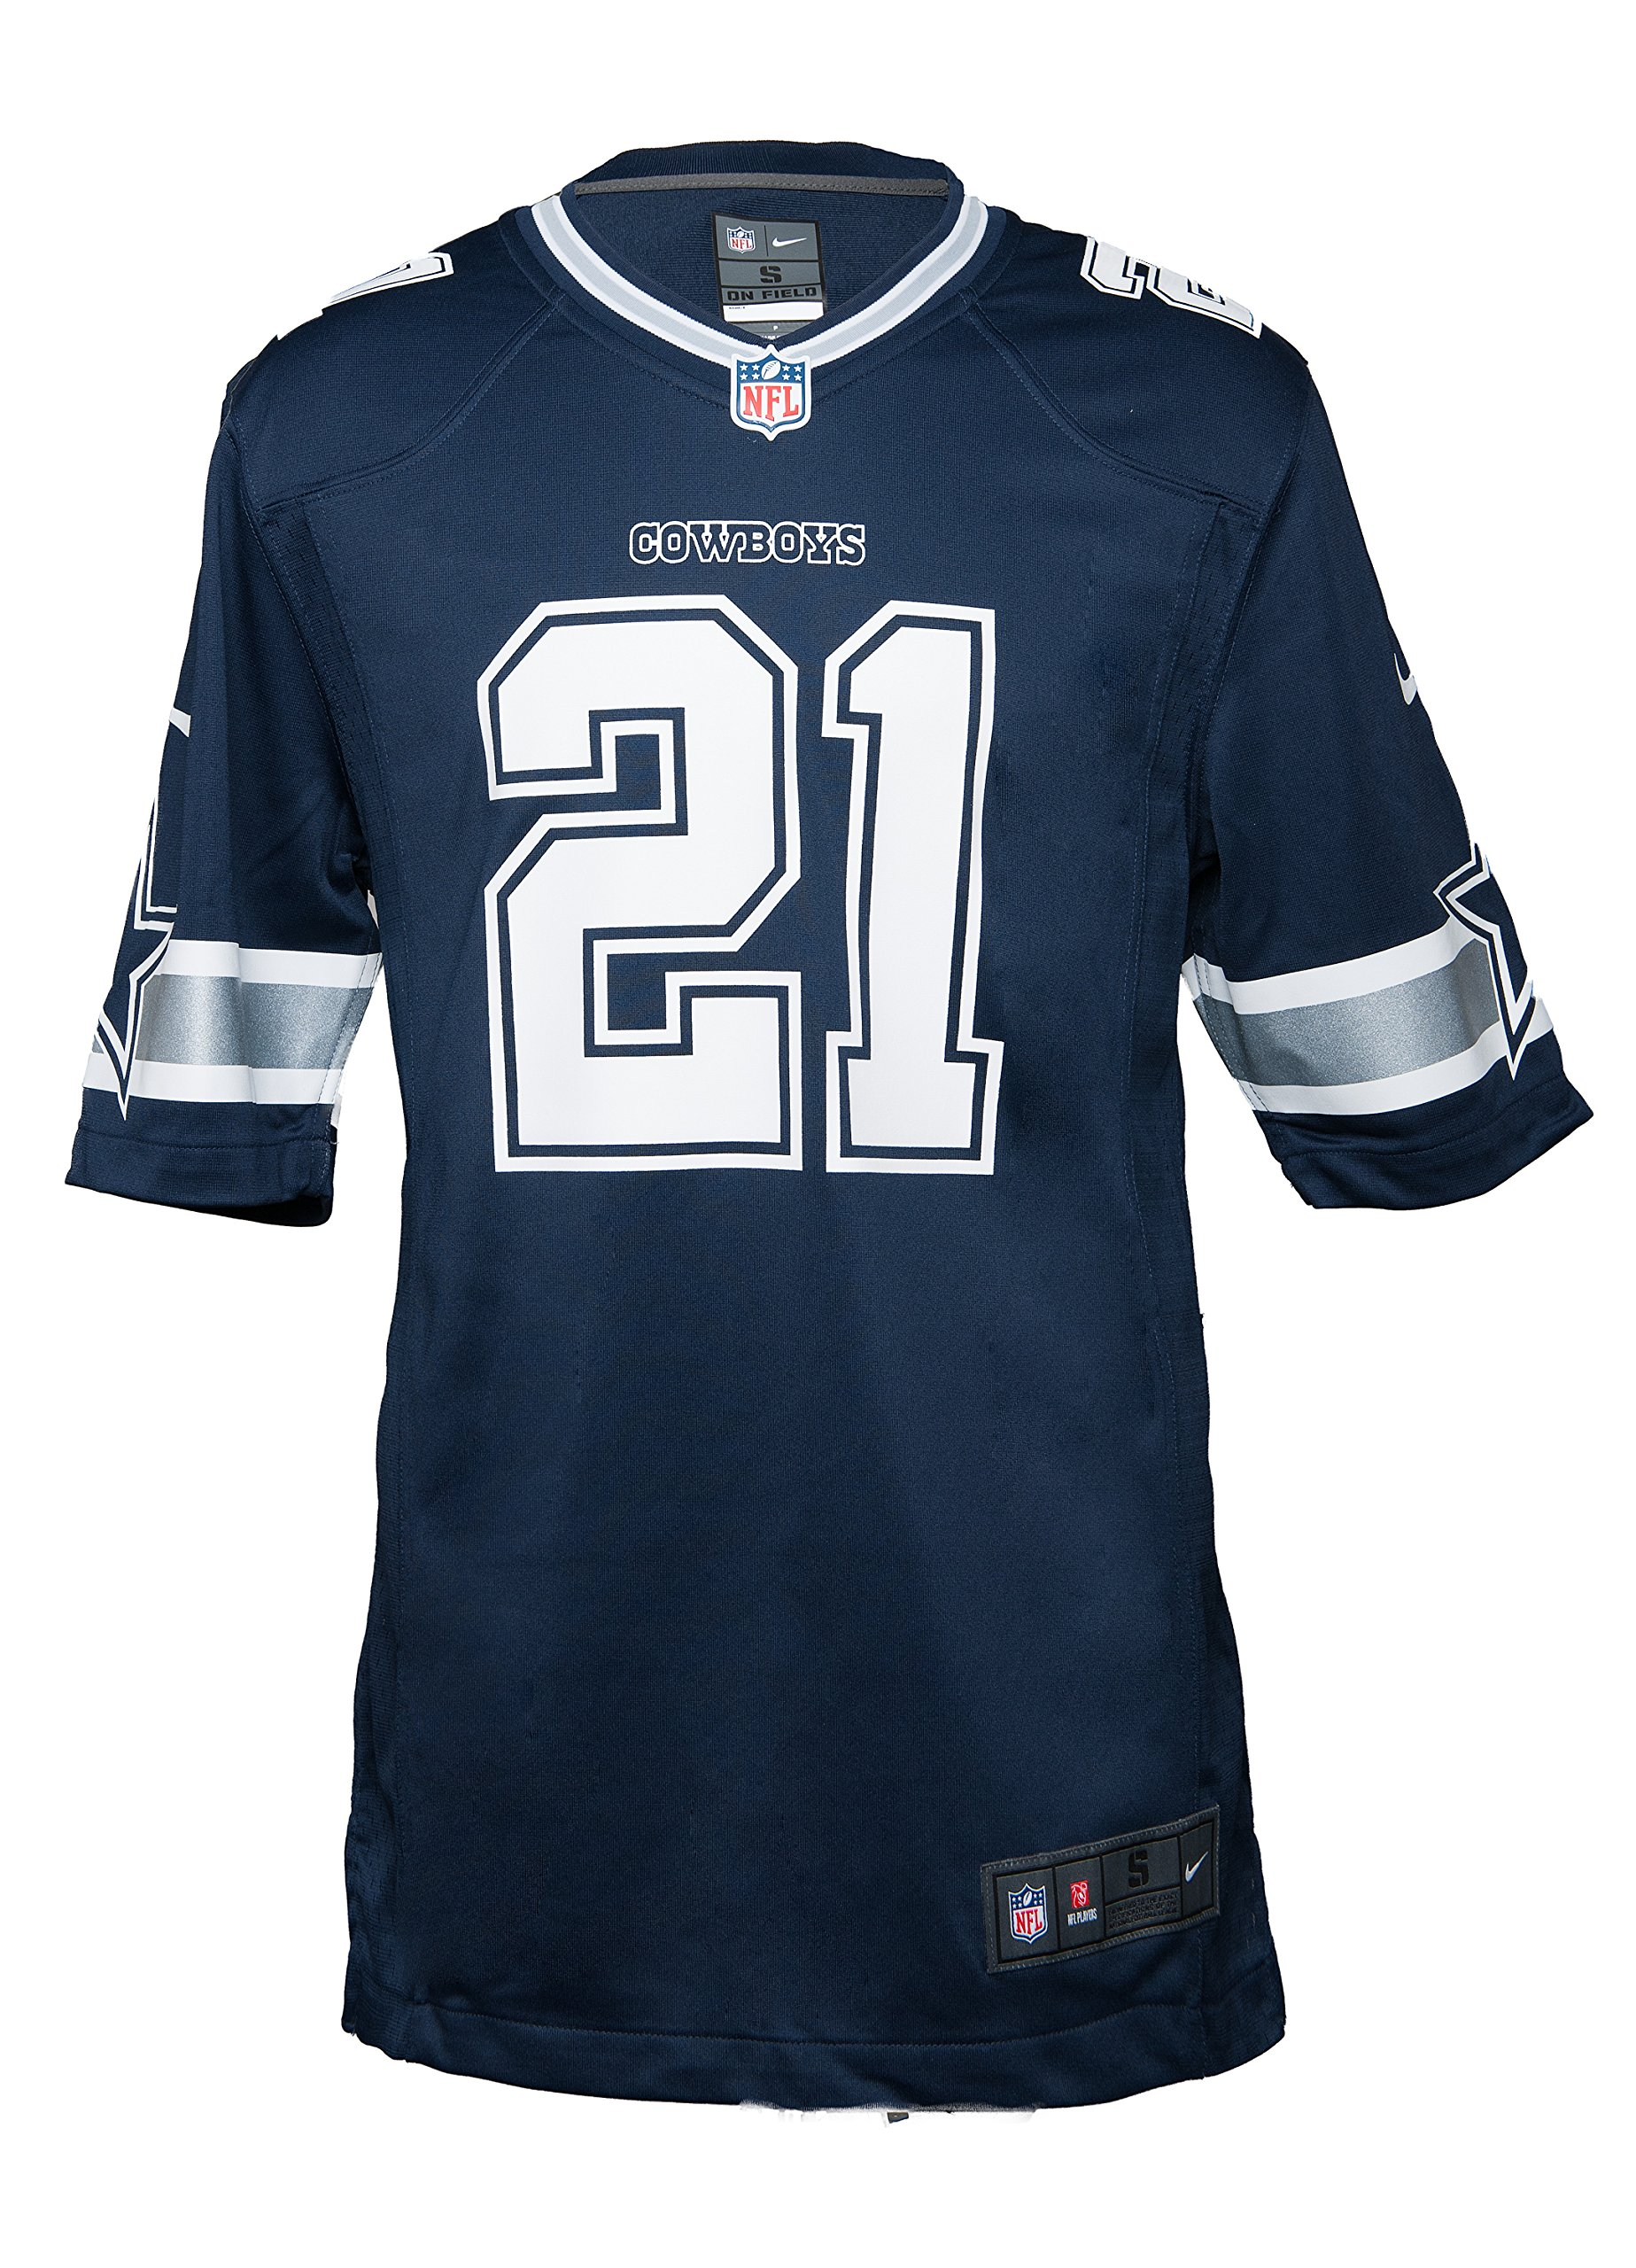 a71795b22 Get Quotations · Dallas Cowboys Ezekiel Elliott Nike Navy Game Replica  Jersey